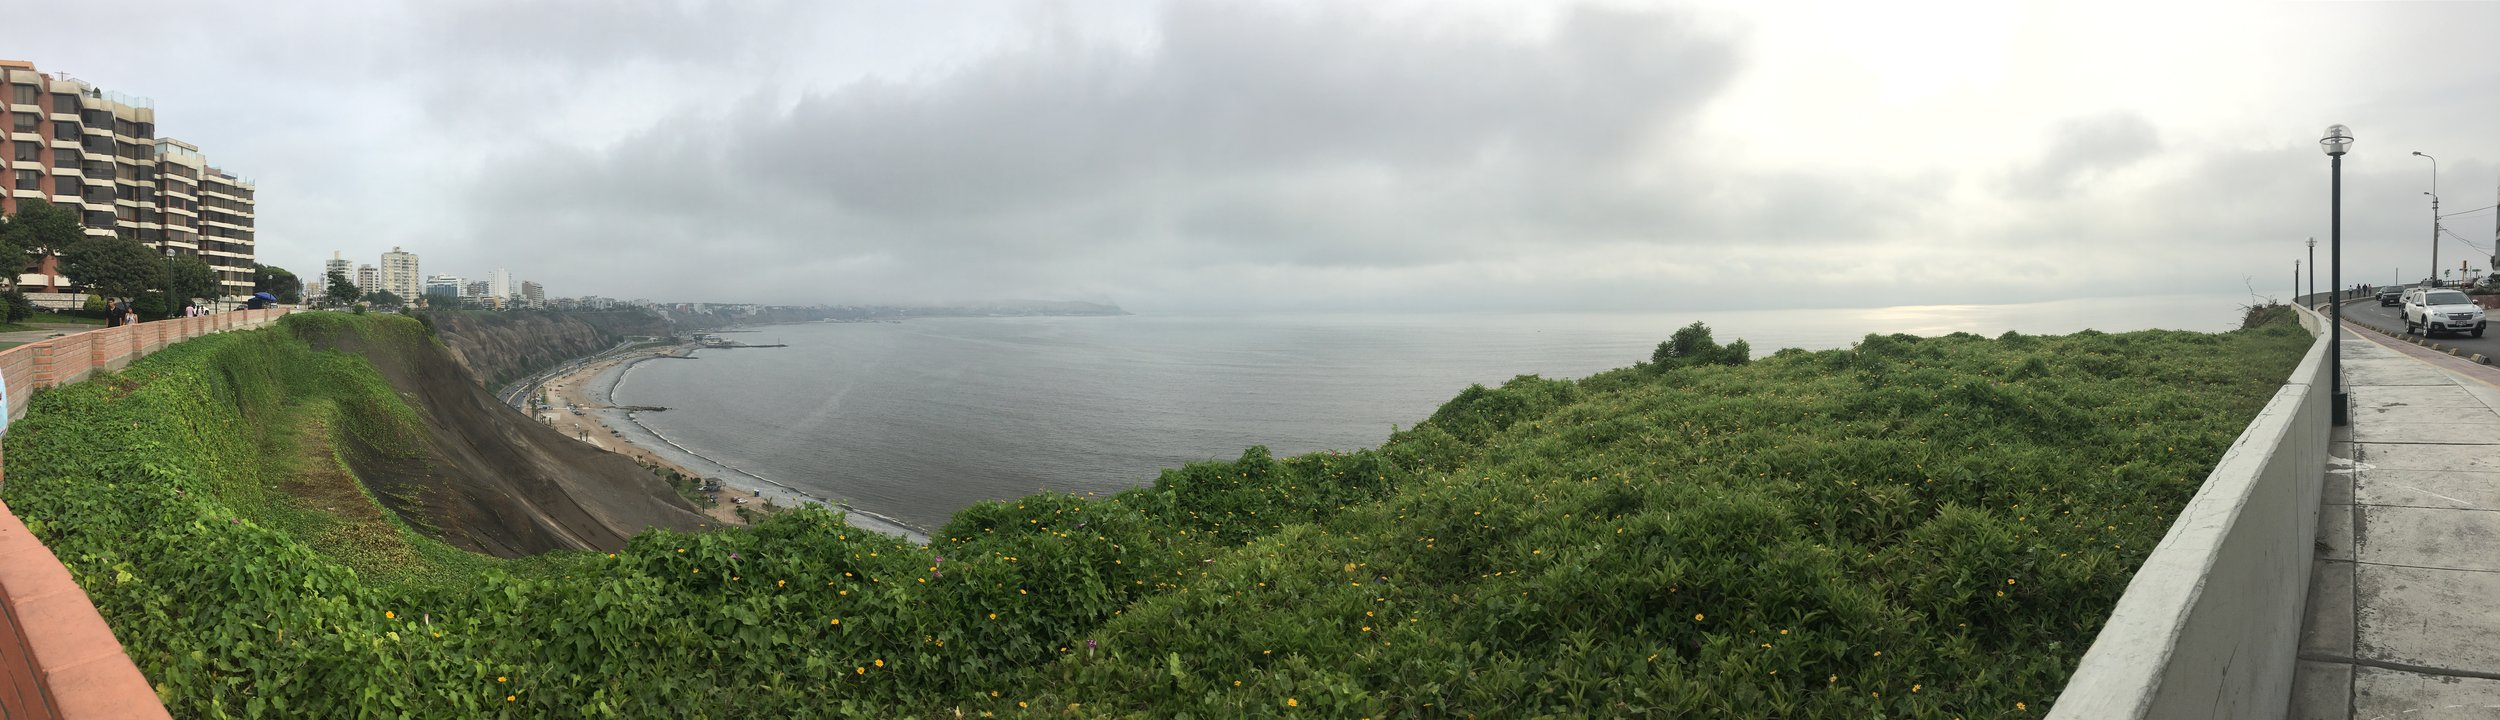 The view of the Pacific Ocean as we walk along the Malecon.